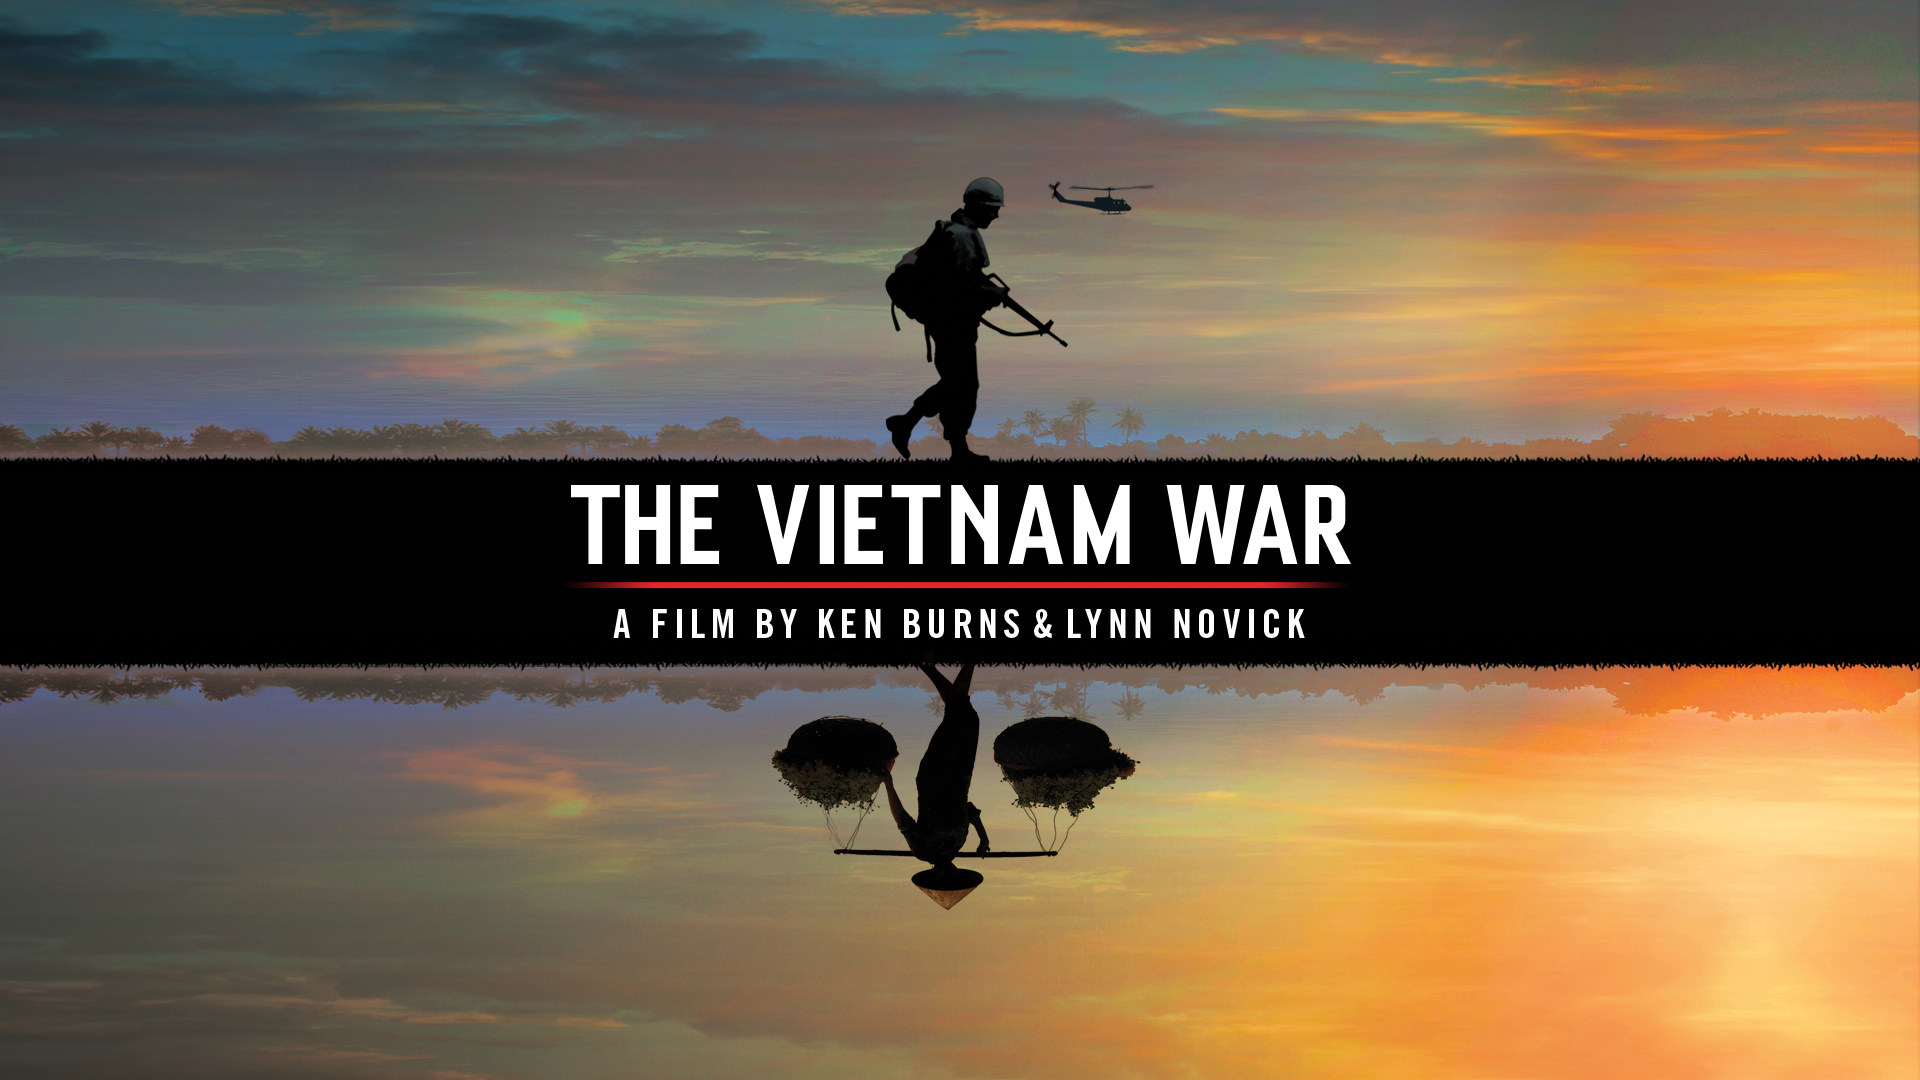 The Vietnam War - A Film by Ken Burns and Lynn Novick